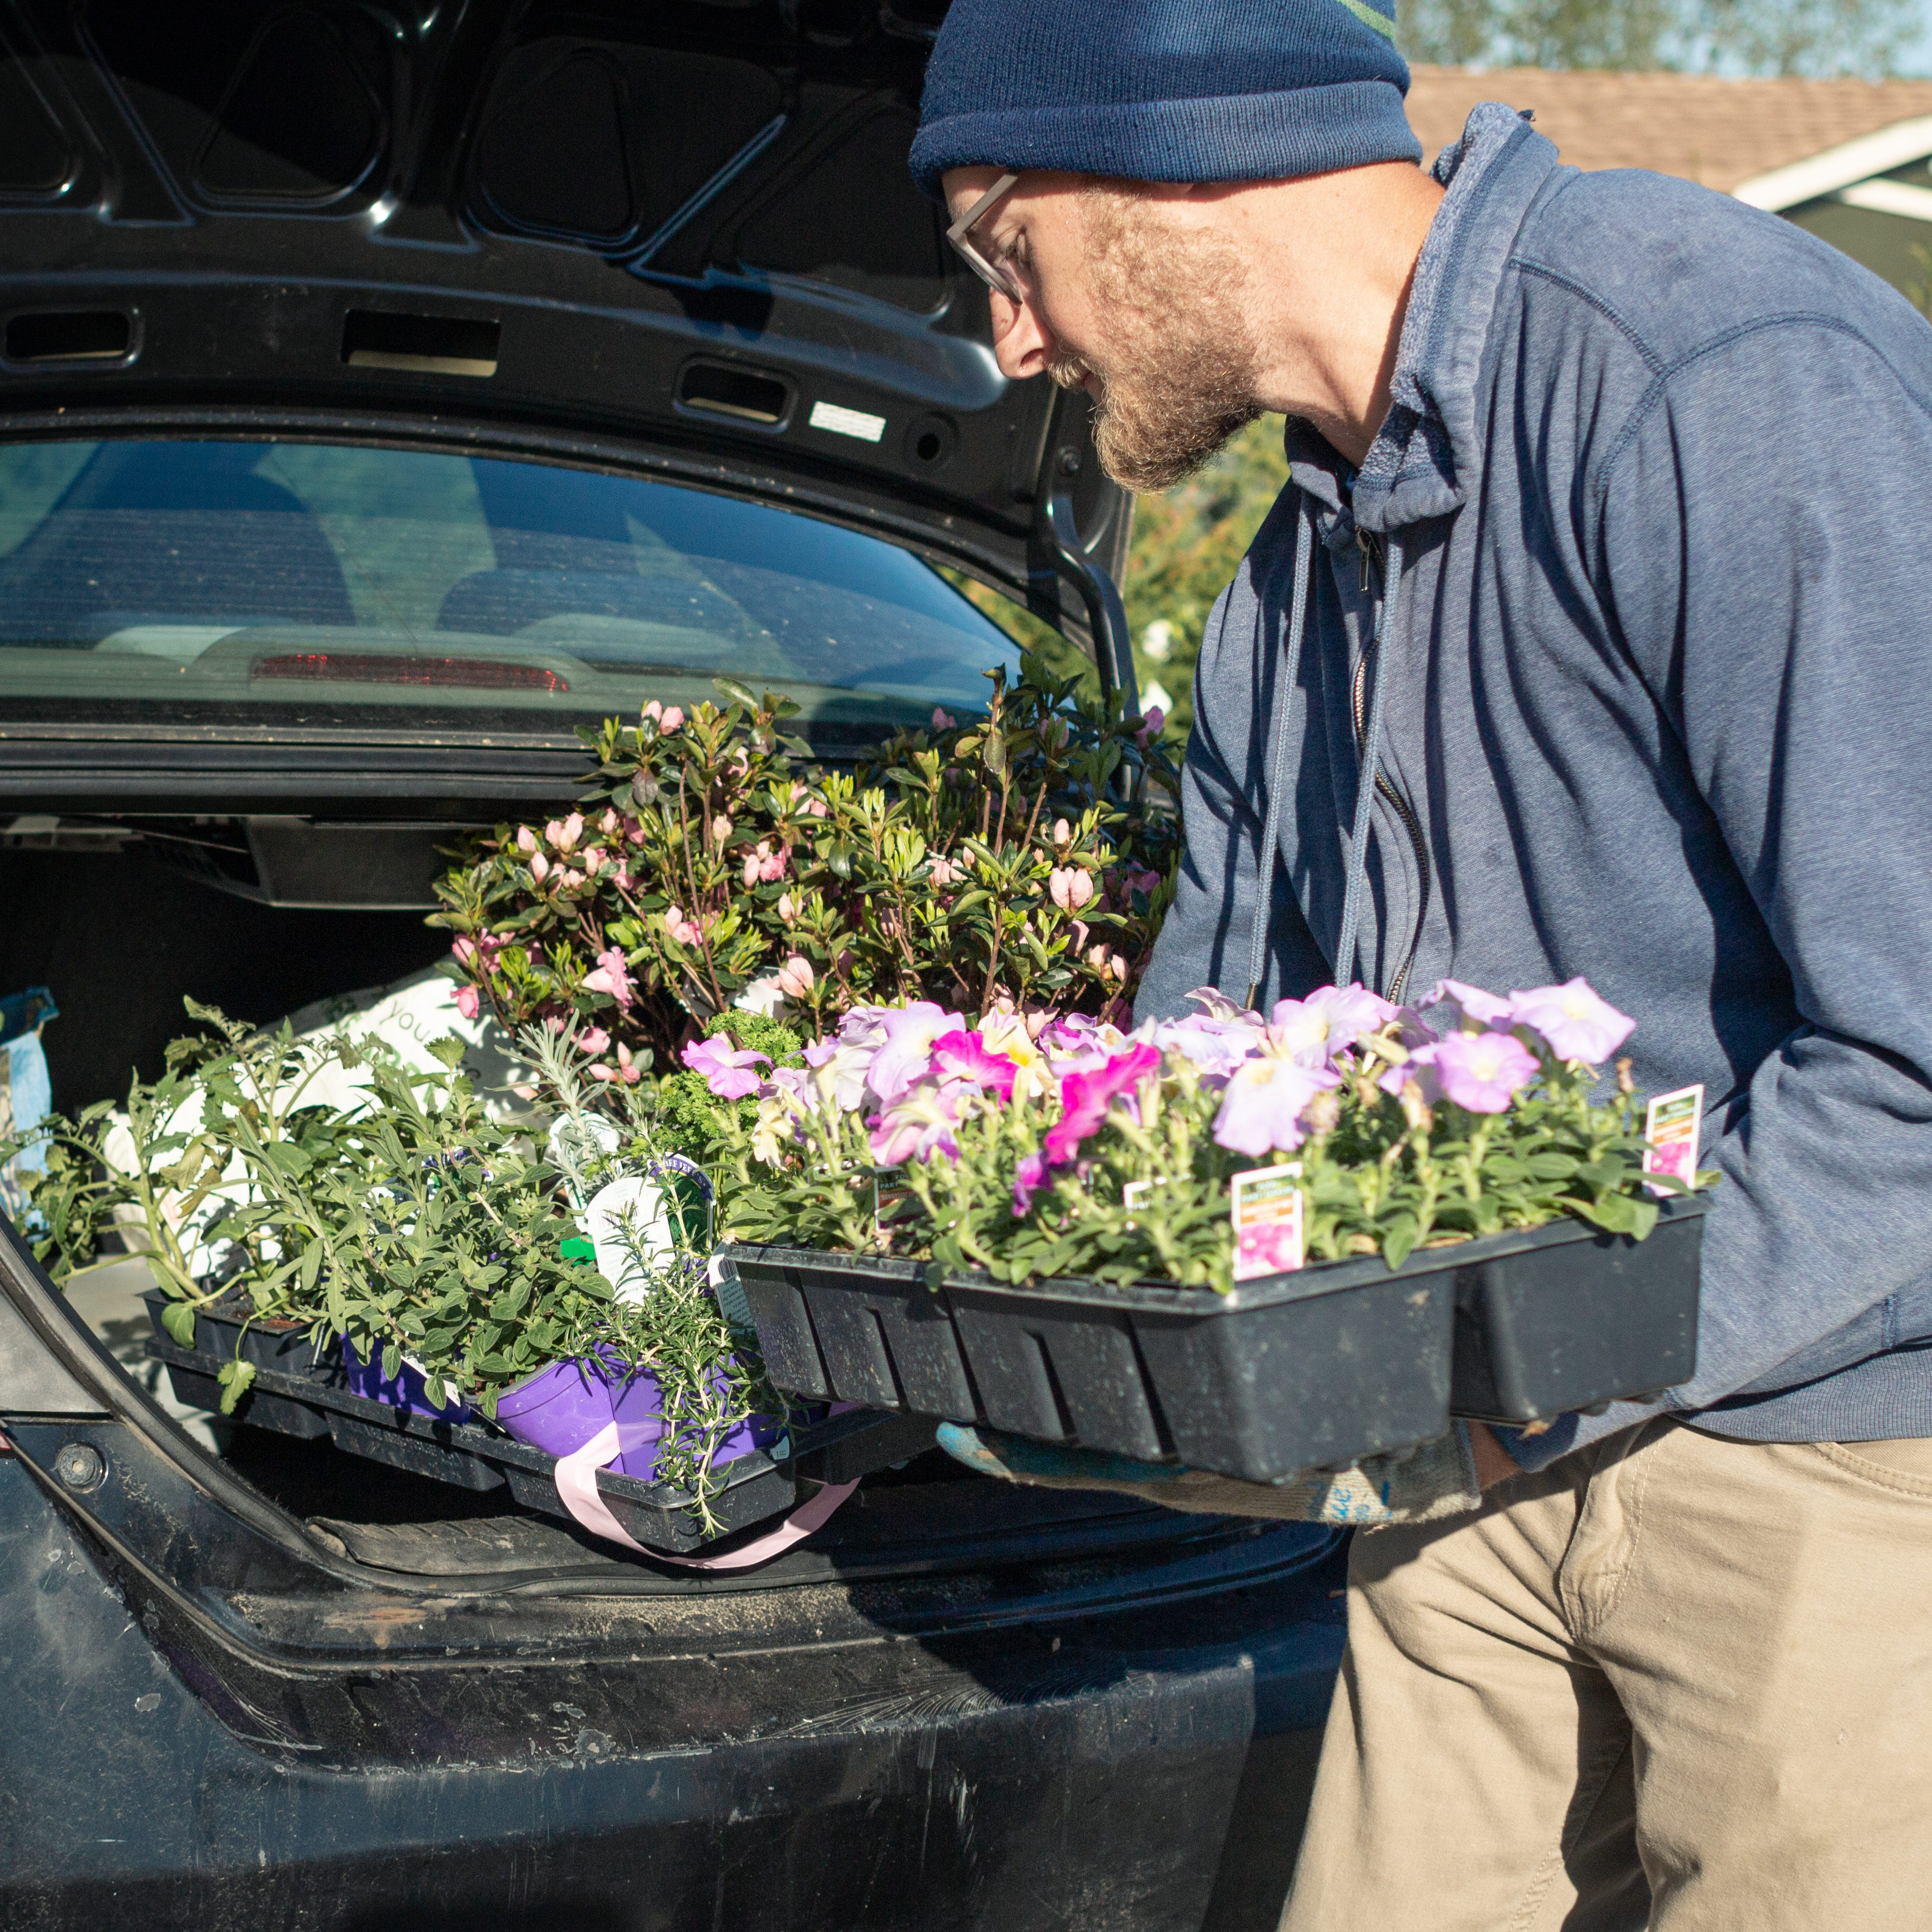 Nashville Area Garden Centers Offer Plant Pickup And Delivery